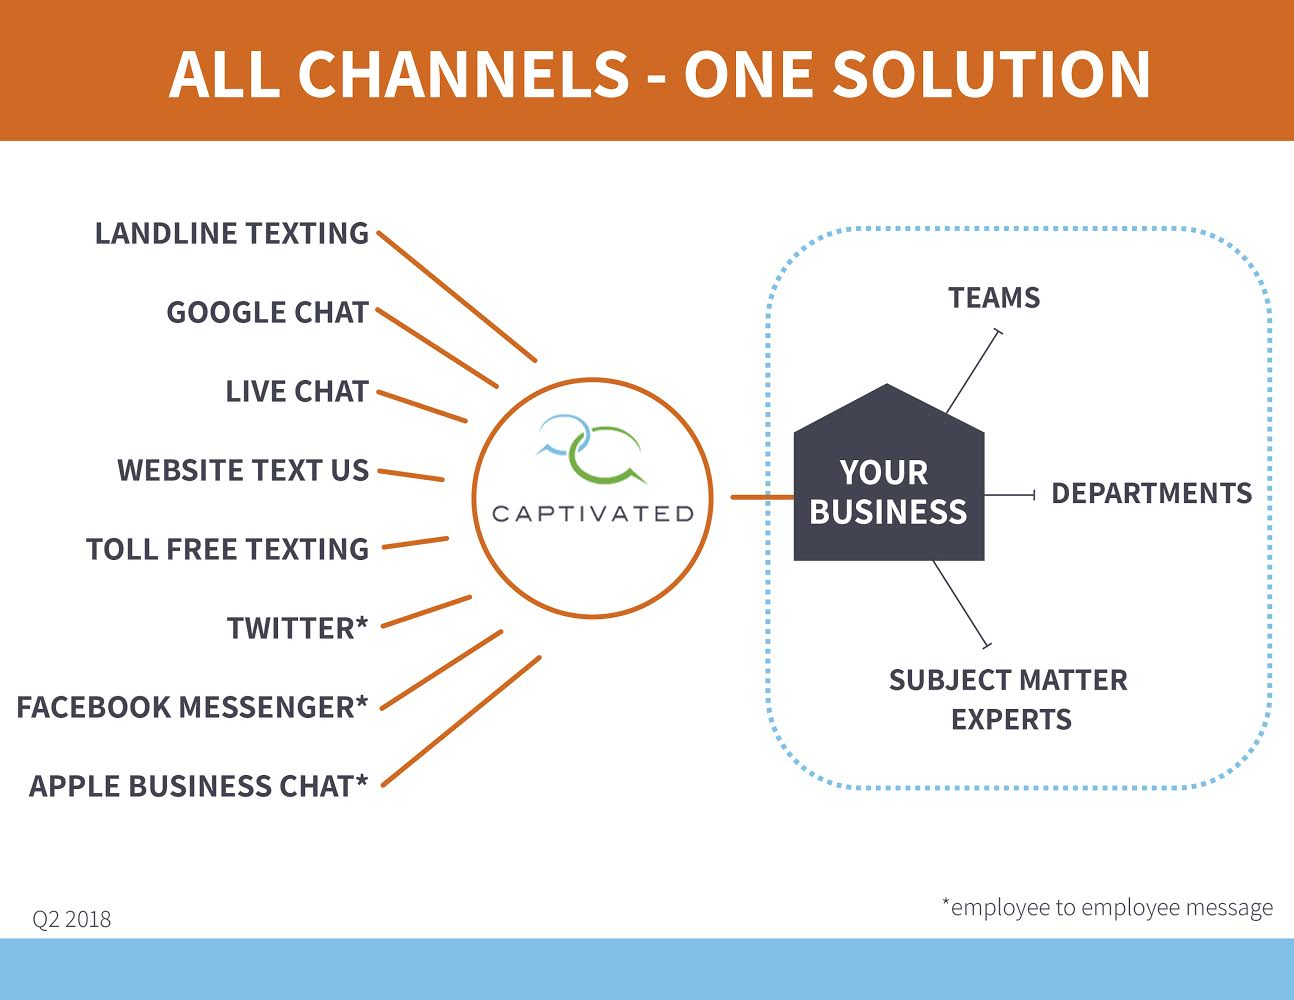 All Channels - One Solution